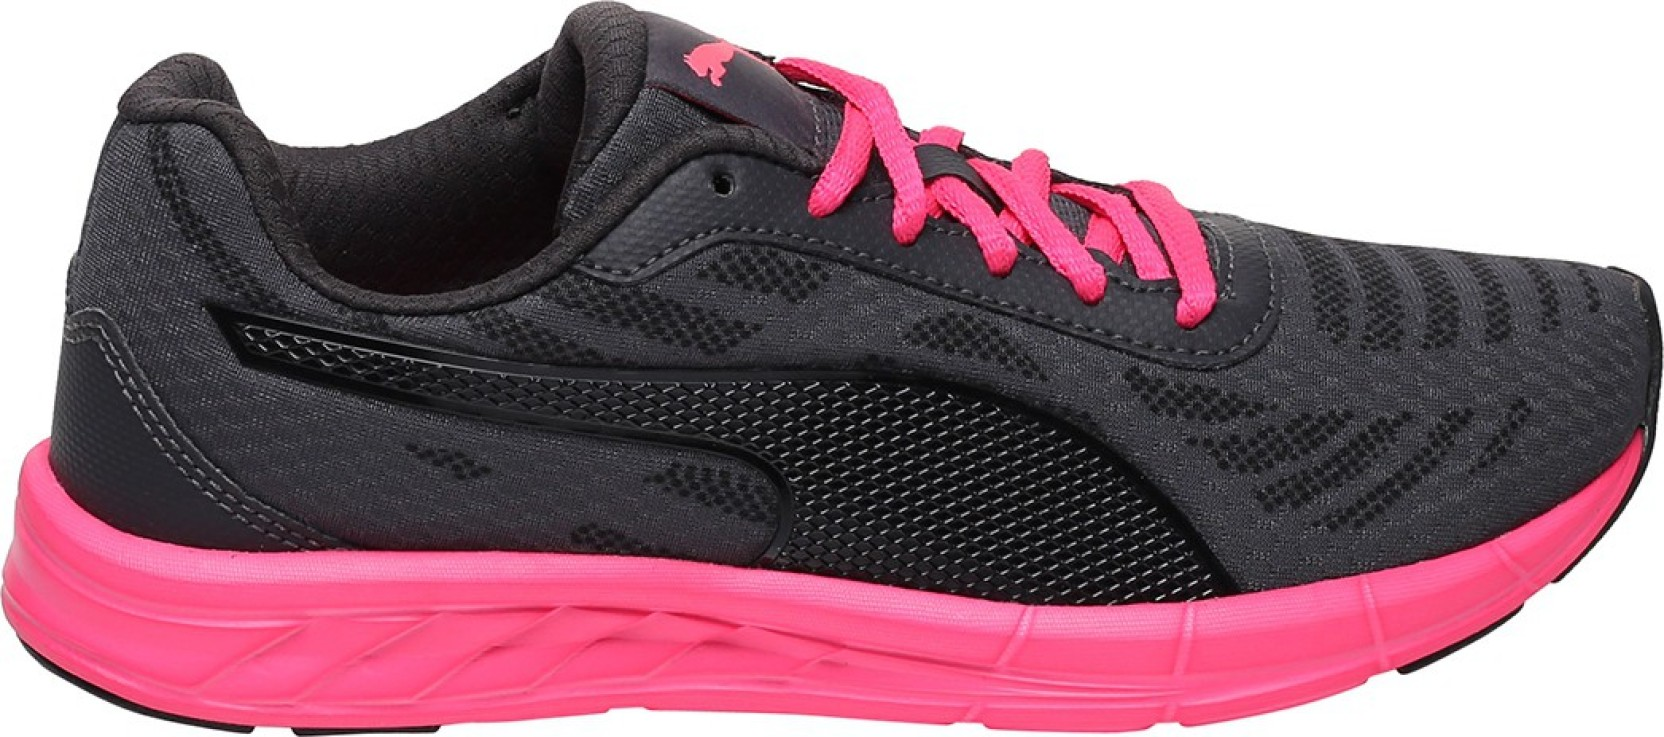 Puma Meteor Wn s IDP Running Shoes For Women (Black)